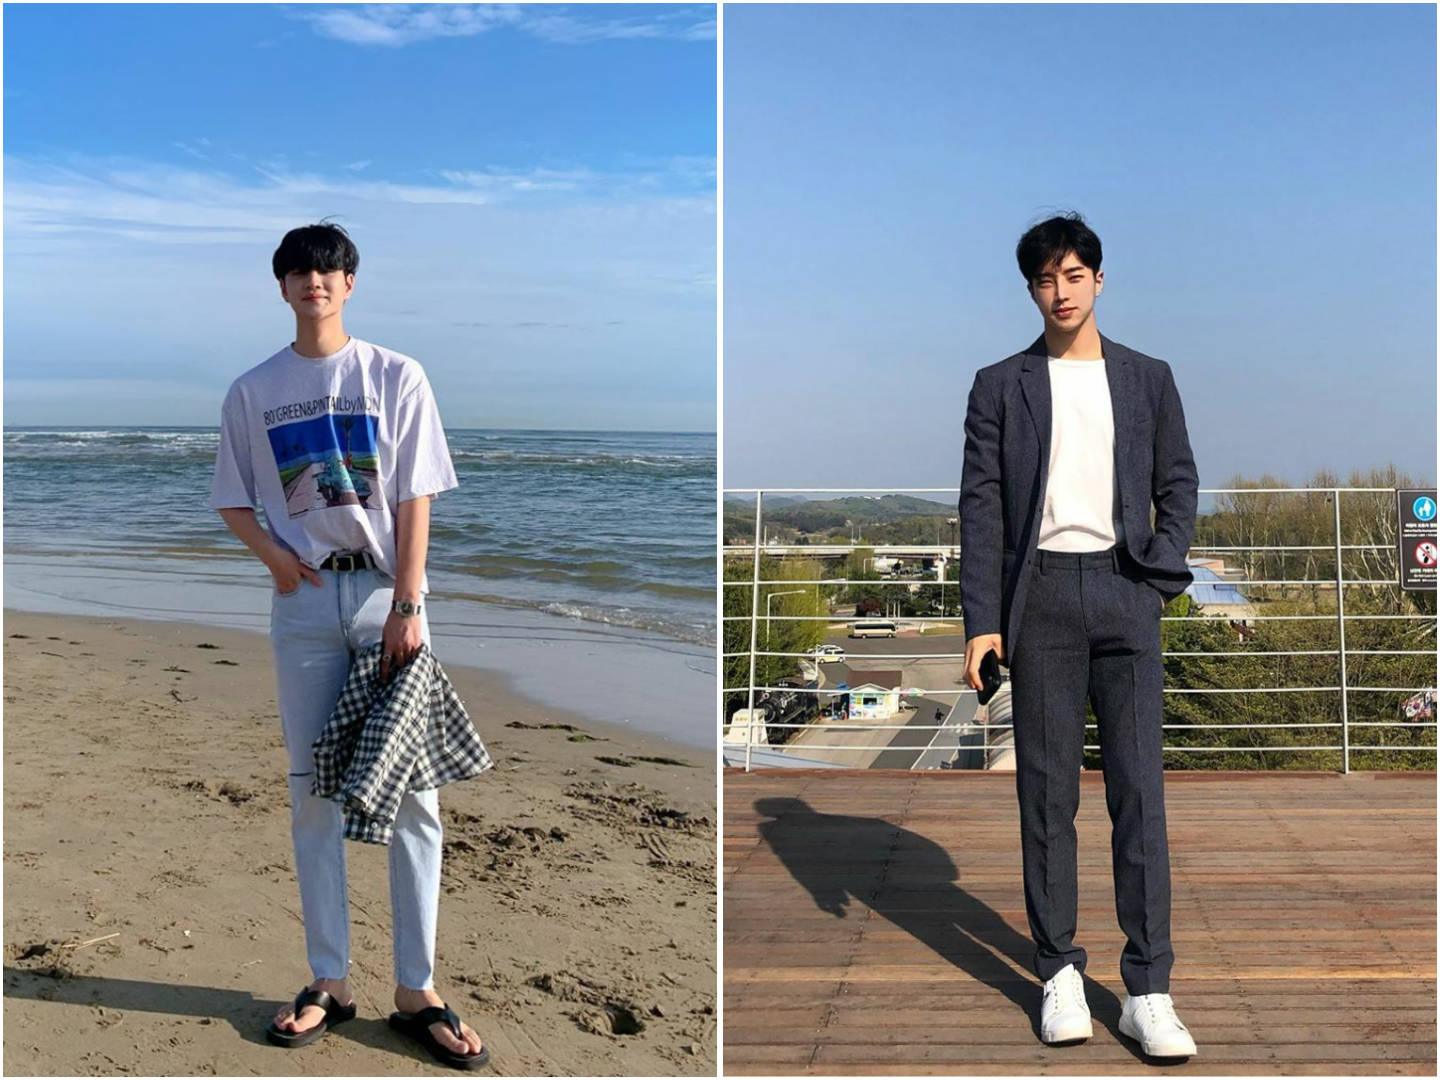 Photo Poses For Men - One hand in pocket for OOTDs